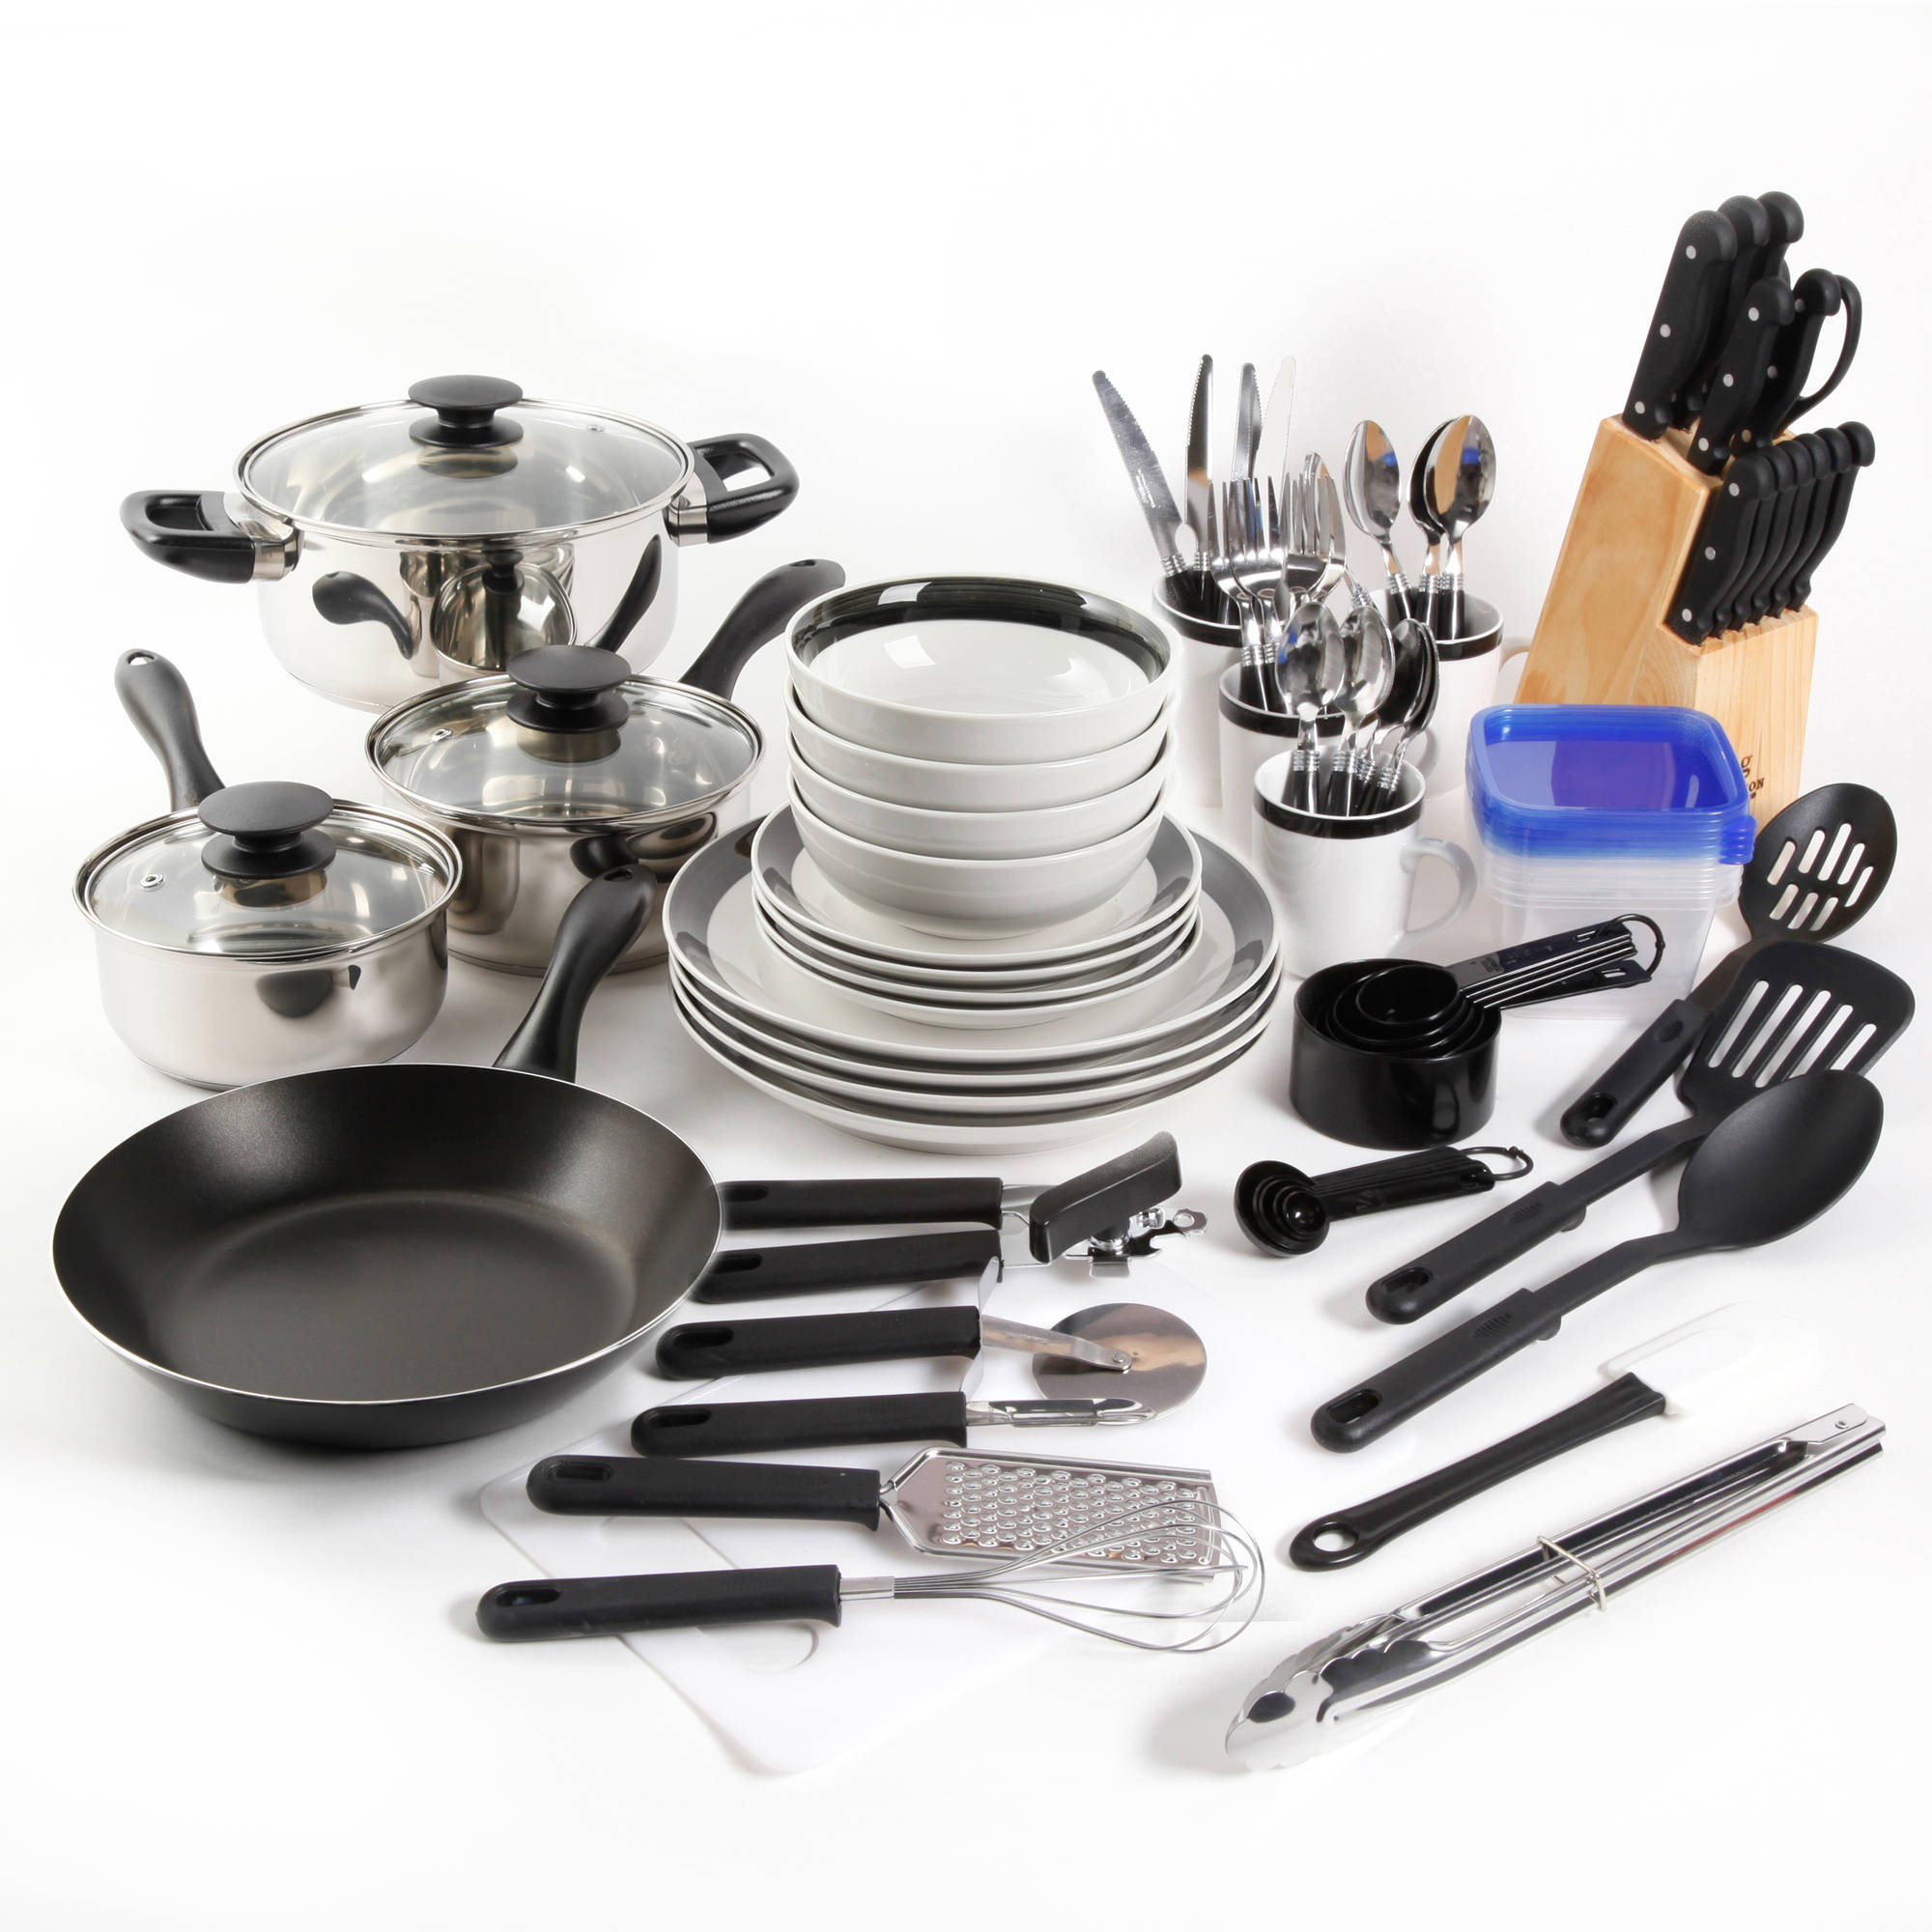 Gibson home essential total kitchen 83 piece combo set ebay for Kitchen set combo offer